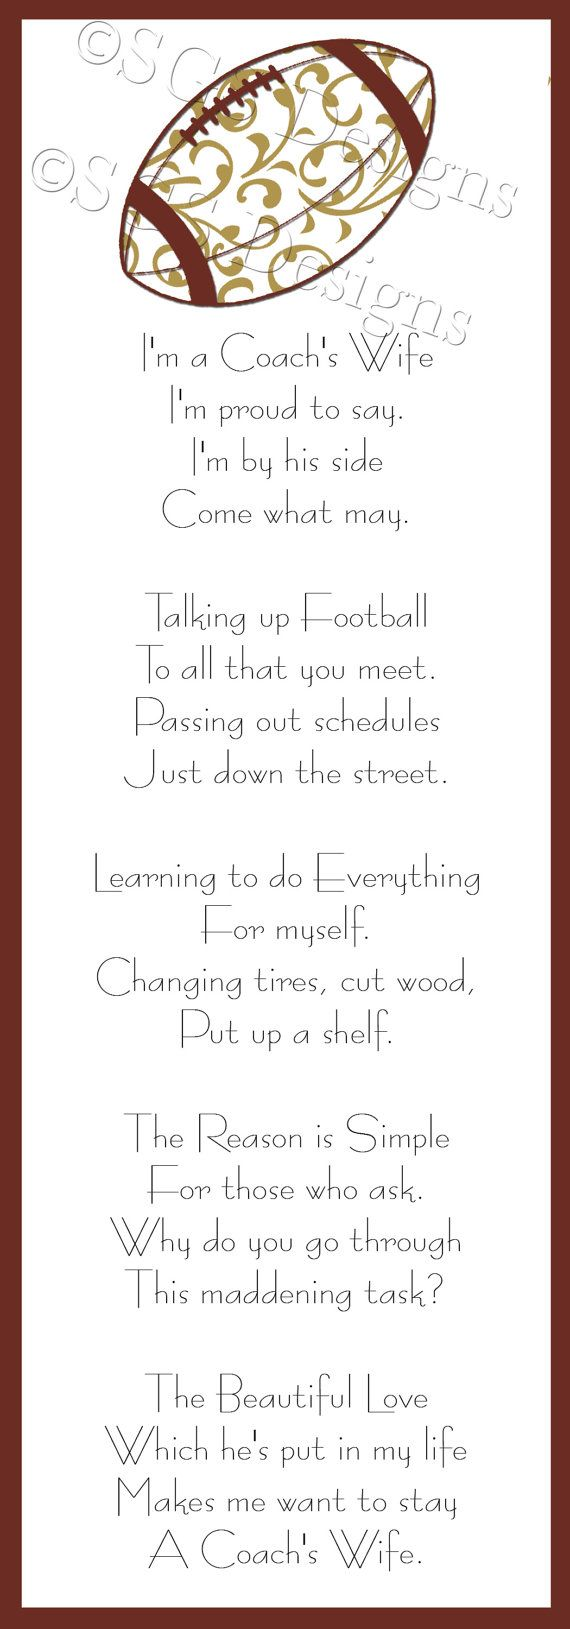 Football Coach's Wife Poem Digital File by SouthernGypsySoul, $5.00